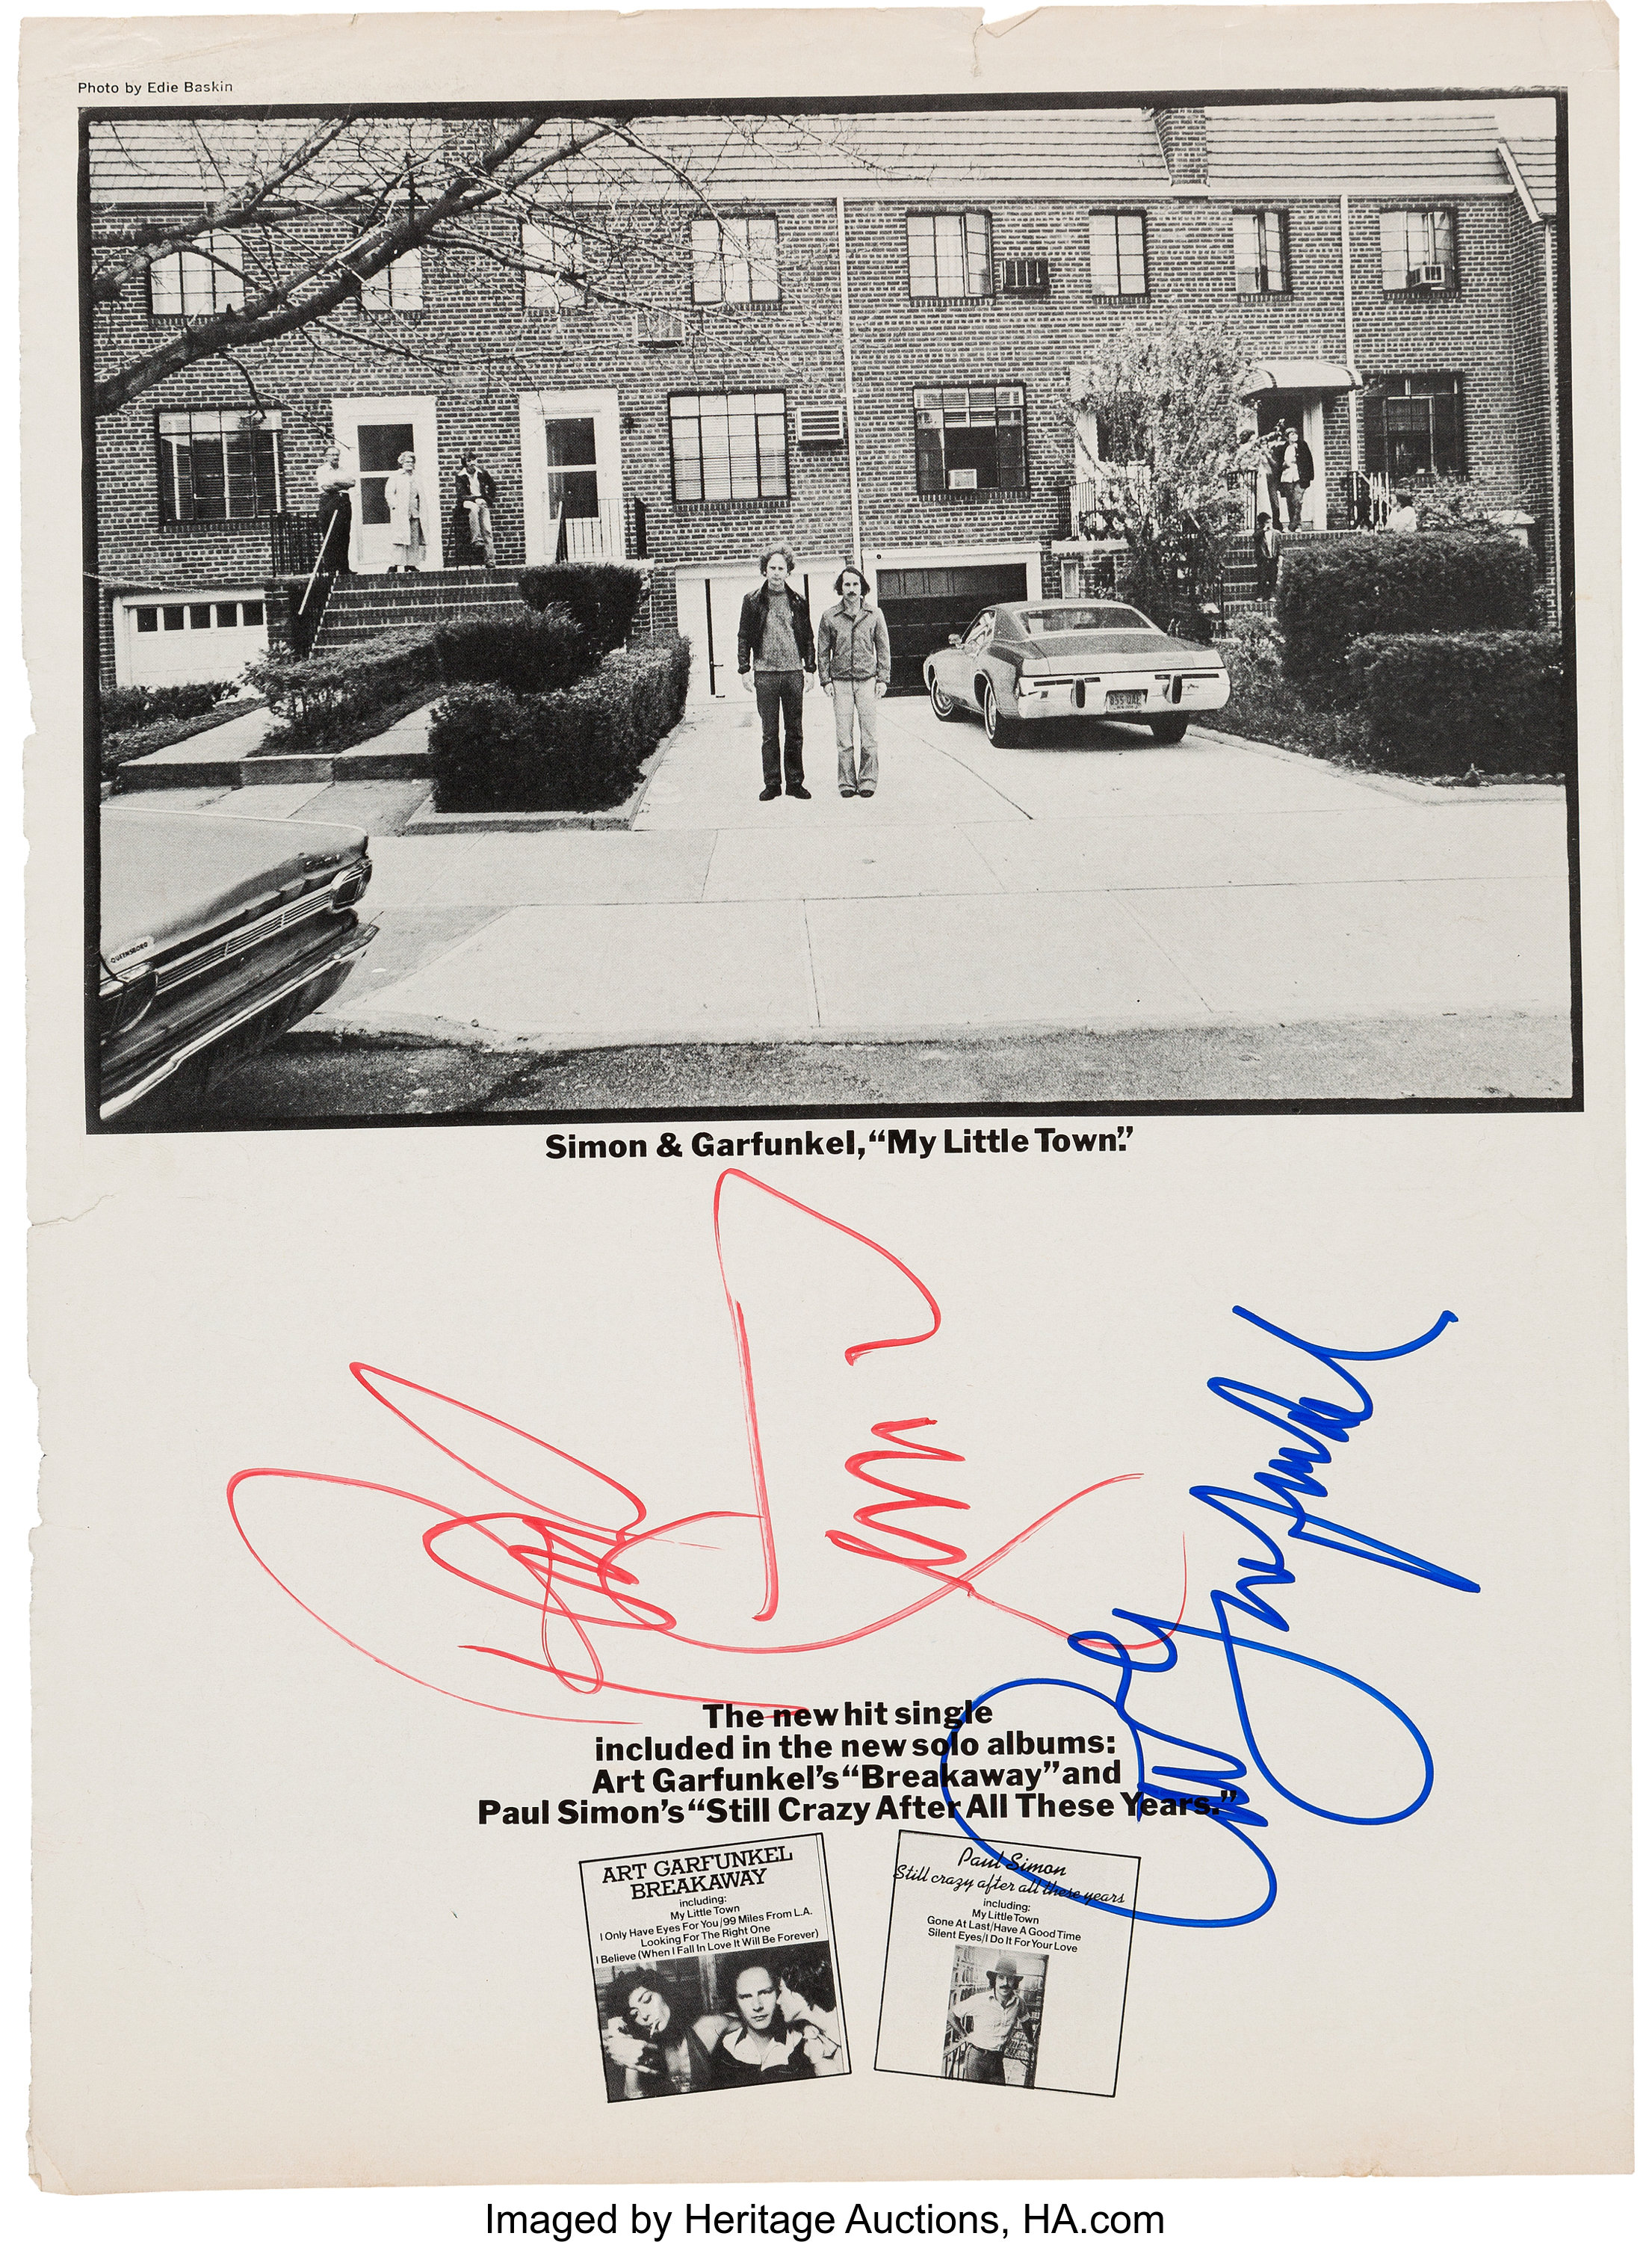 99 Miles From La Art Garfunkel simon & garfunkel signed billboard advertisement (1975